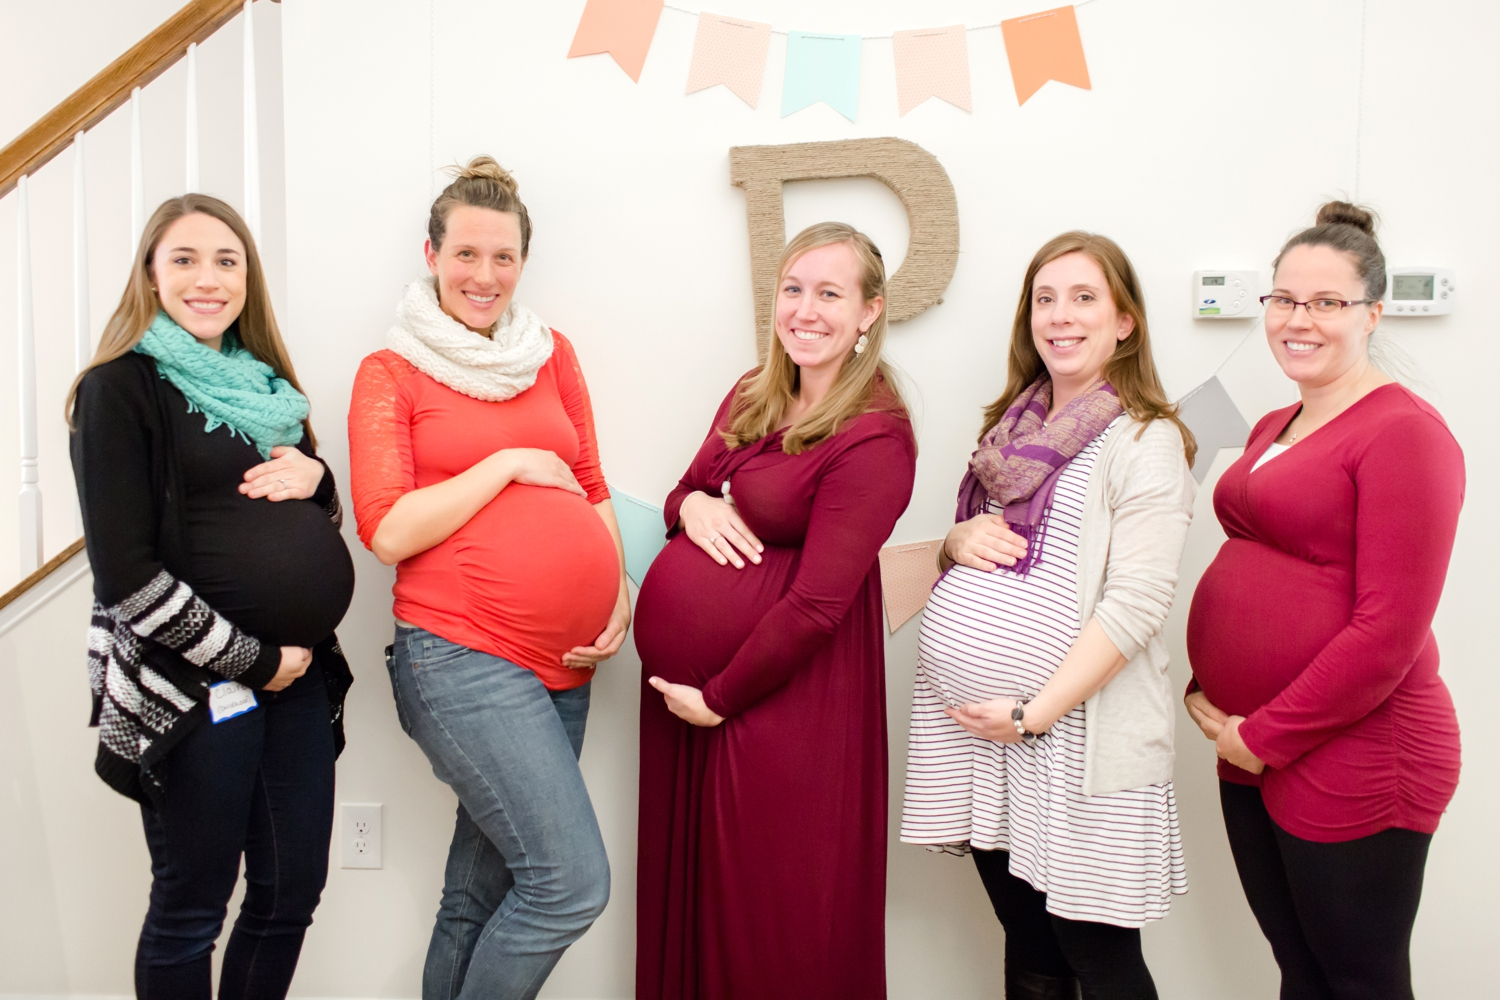 So many babies on their way in the next few months!!